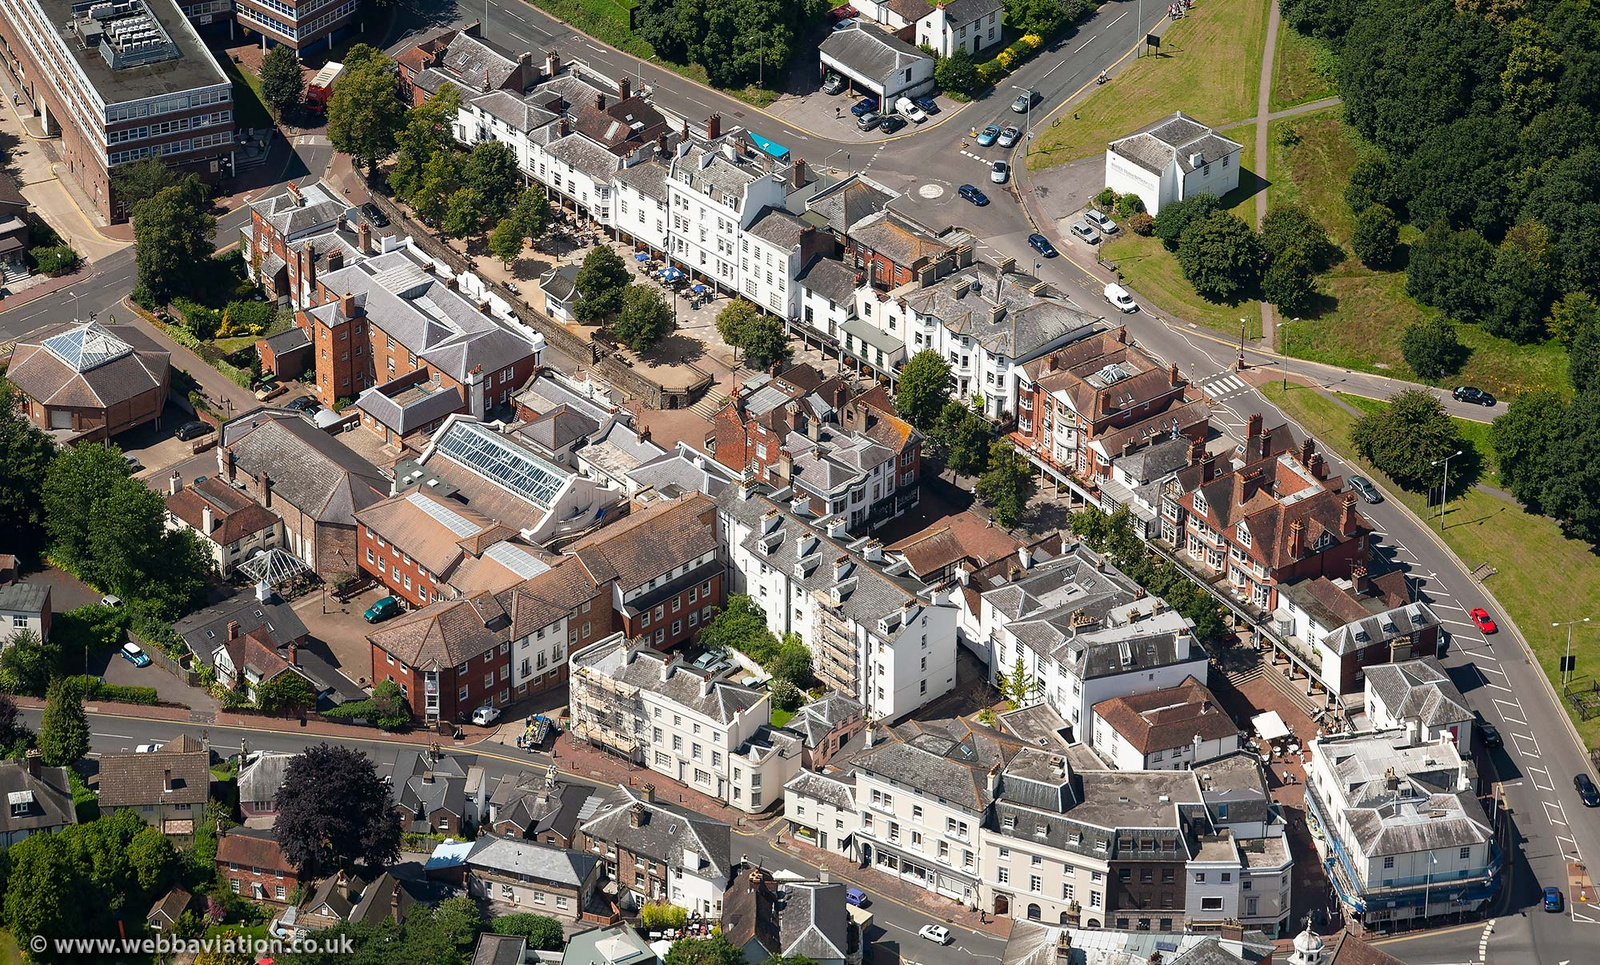 The Pantiles Tunbridge Wells from the air